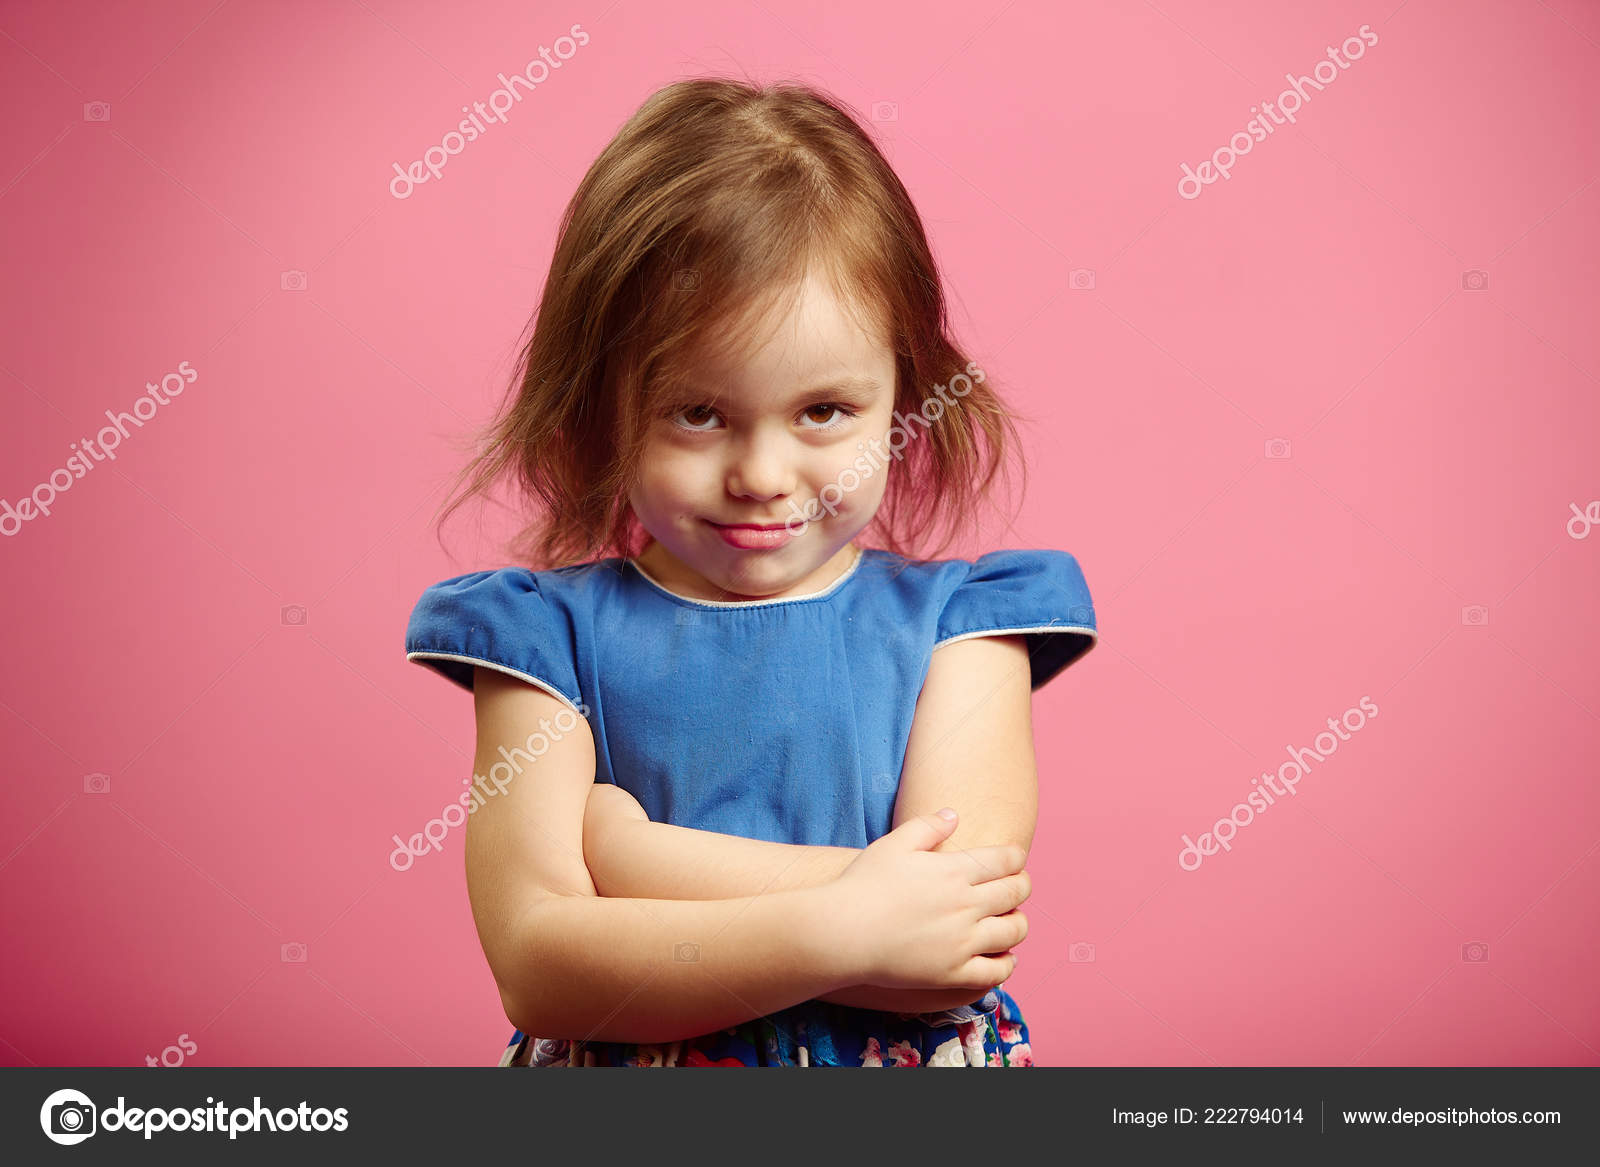 a80096b534ac Sad little girl with crossed on chest arms looks from under with deep brown  eyes and stands beside pink wall dressed in blue dress emotional portrait  photo.